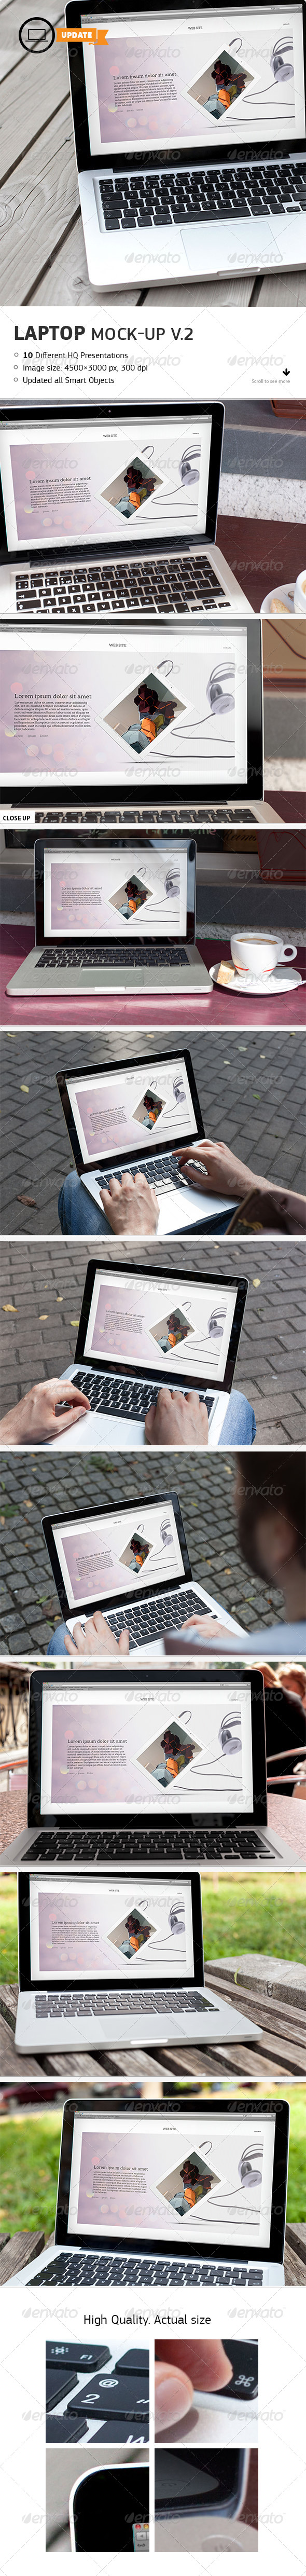 10 Laptop Mockups Vol.2 - Laptop Displays